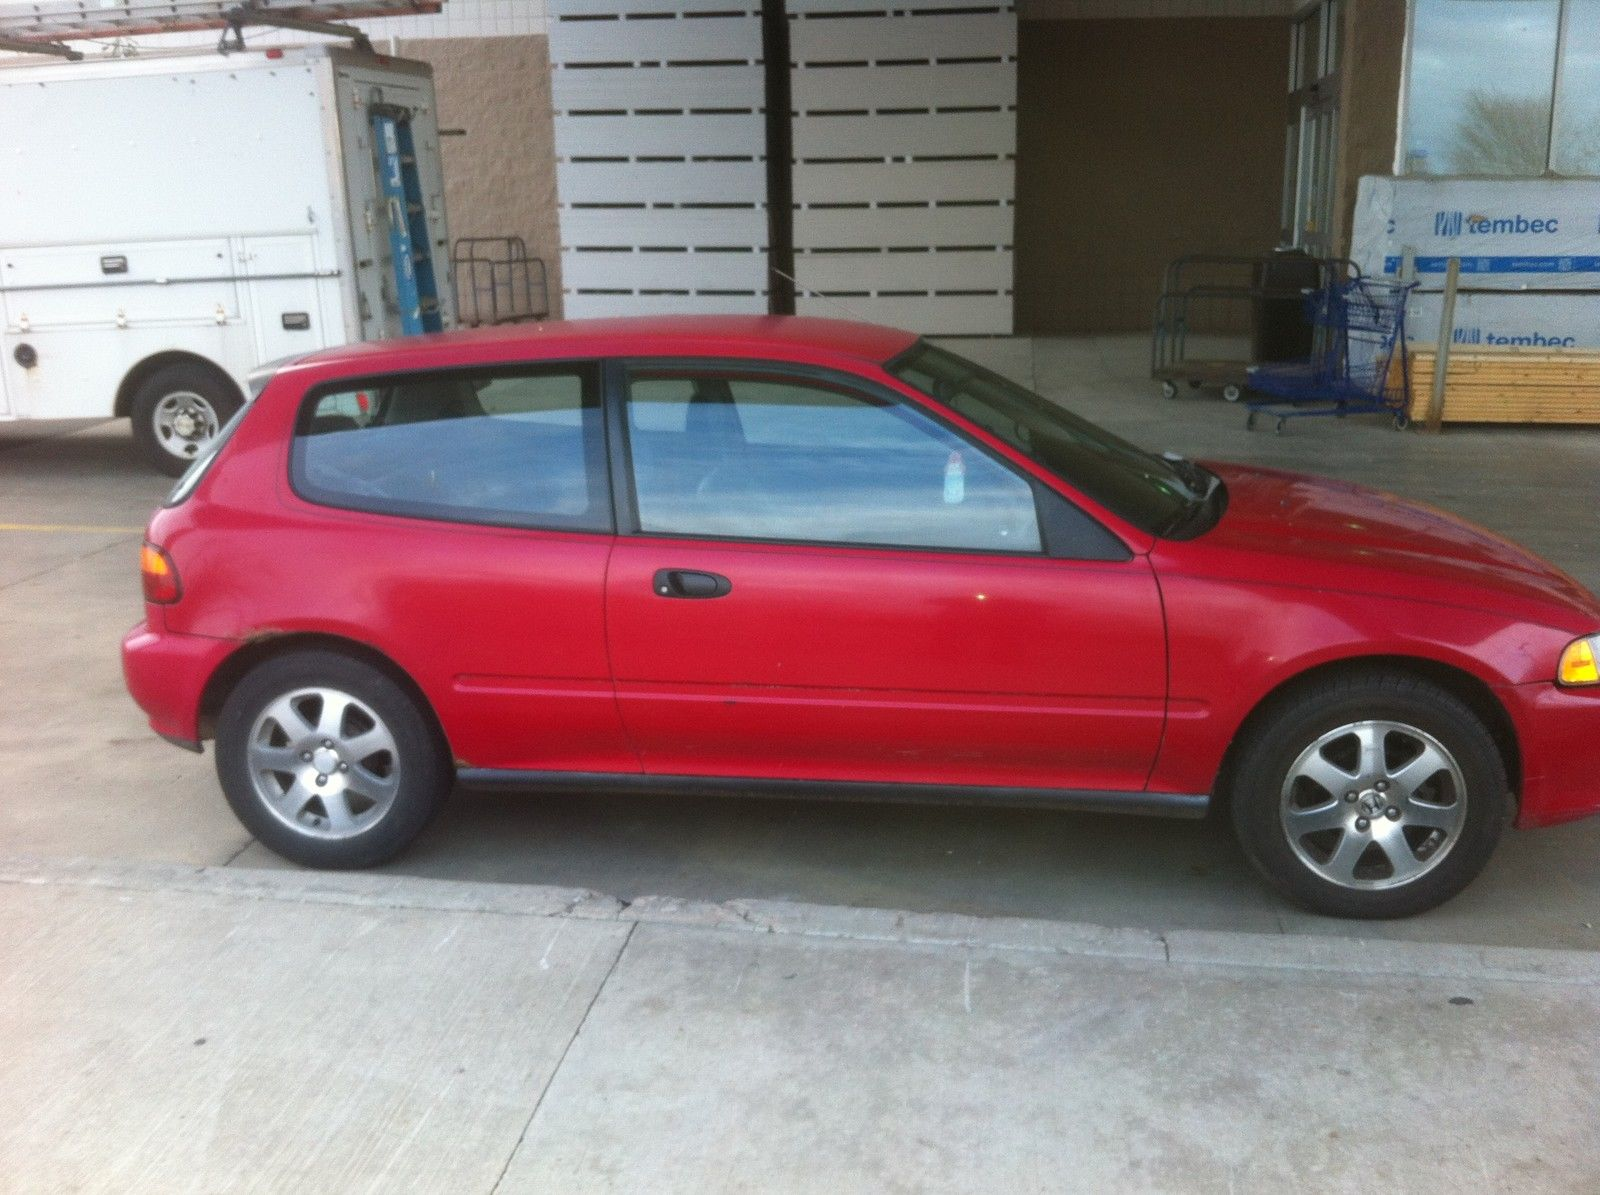 1992 Honda Civic CX Hatchback Bubble back 5 speed d15 eg ...